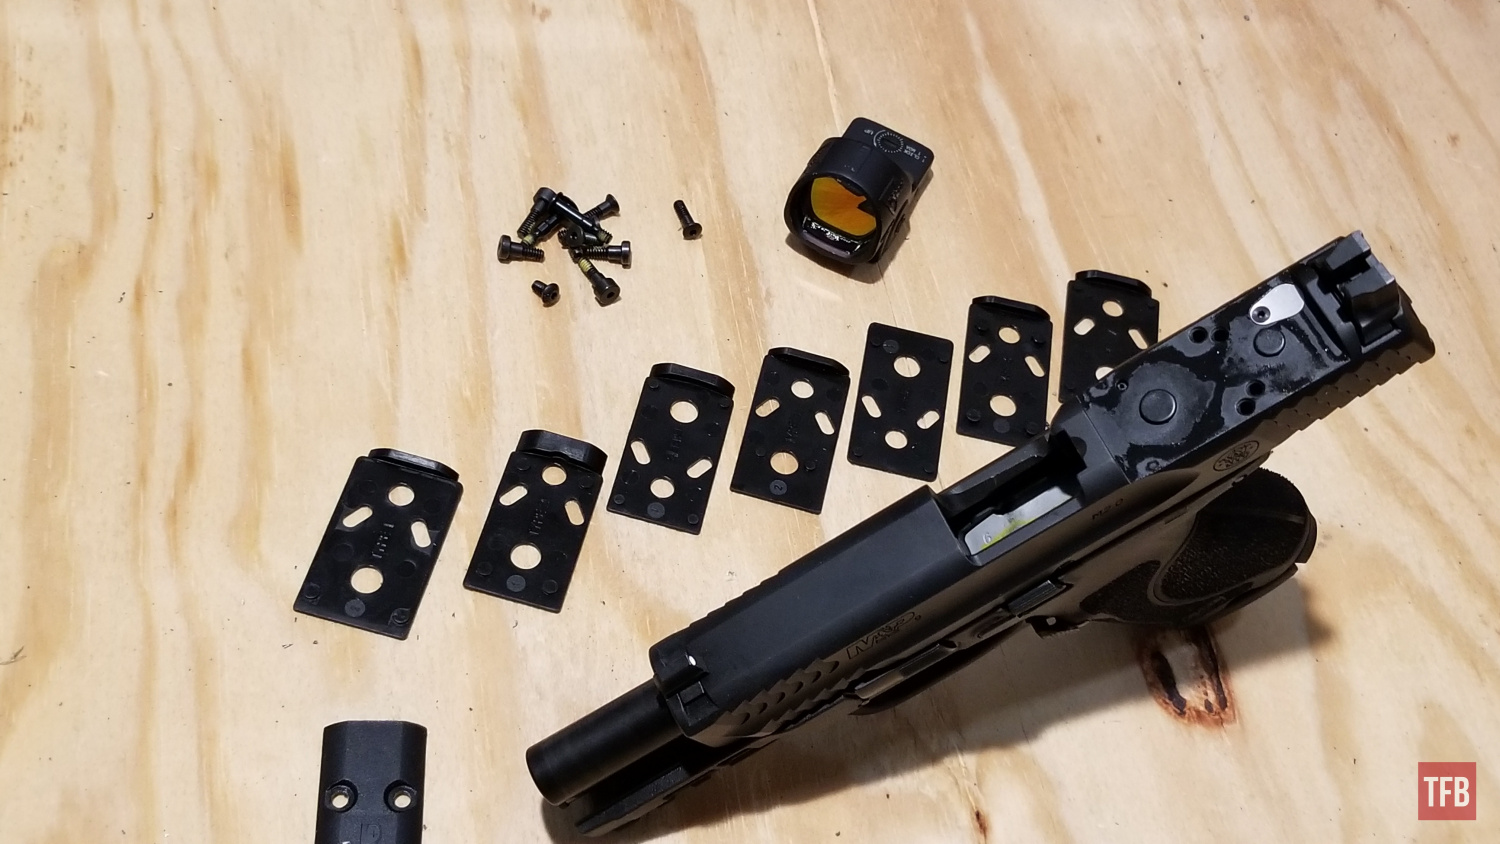 Reviewing the Smith & Wesson M&P 2.0 Compact Optics Ready Pistol